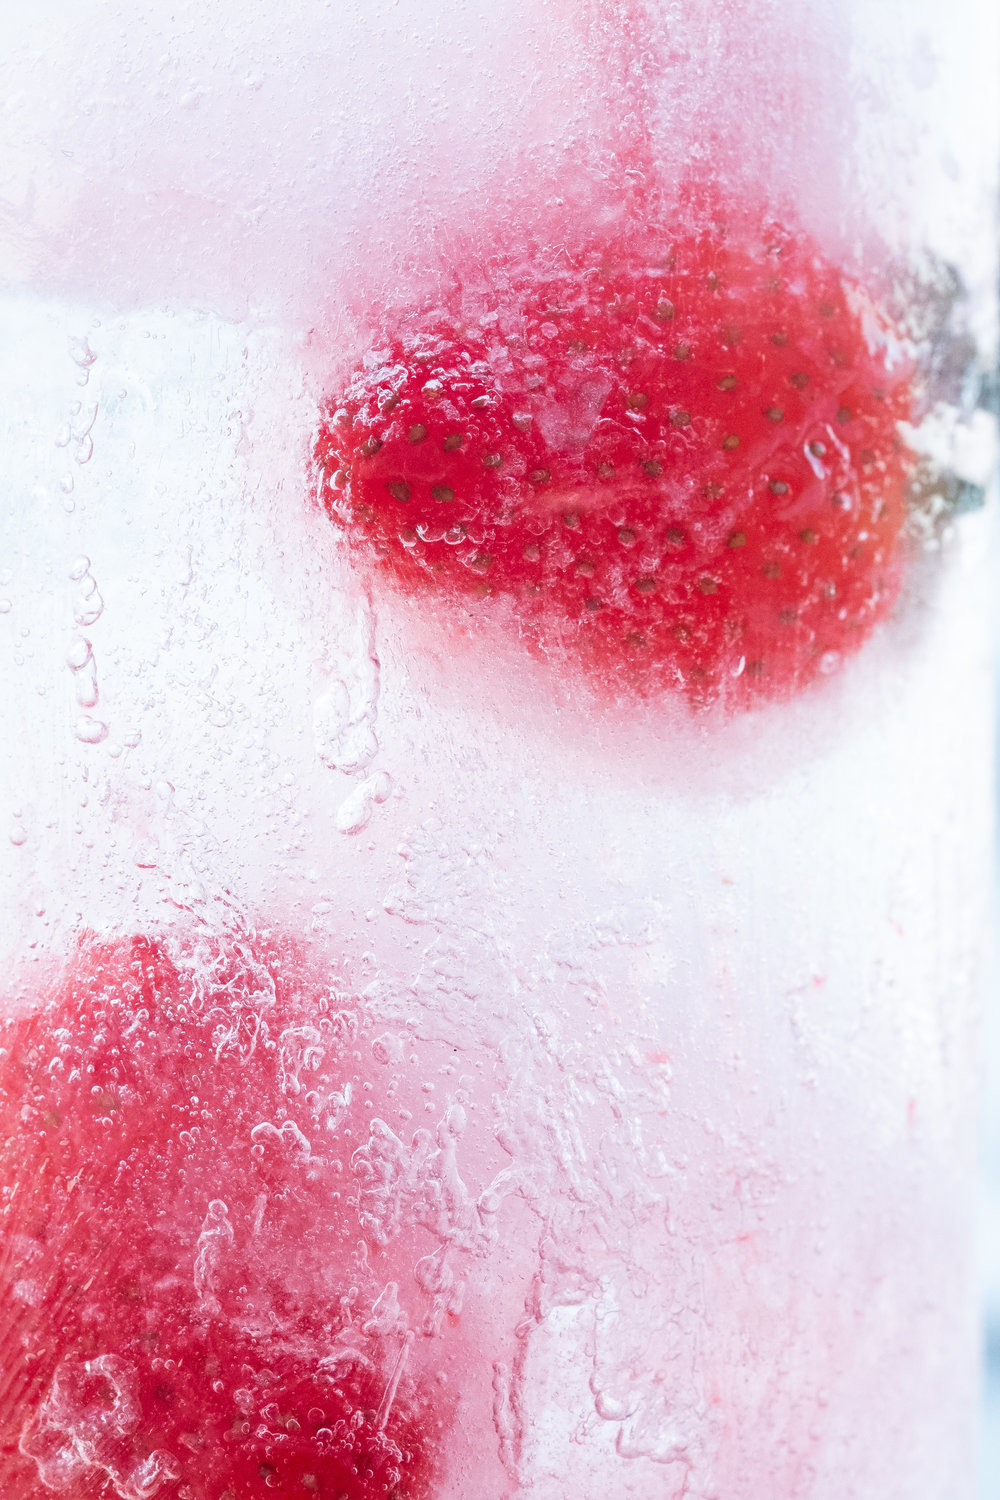 Frozen Strawberry 7.jpg